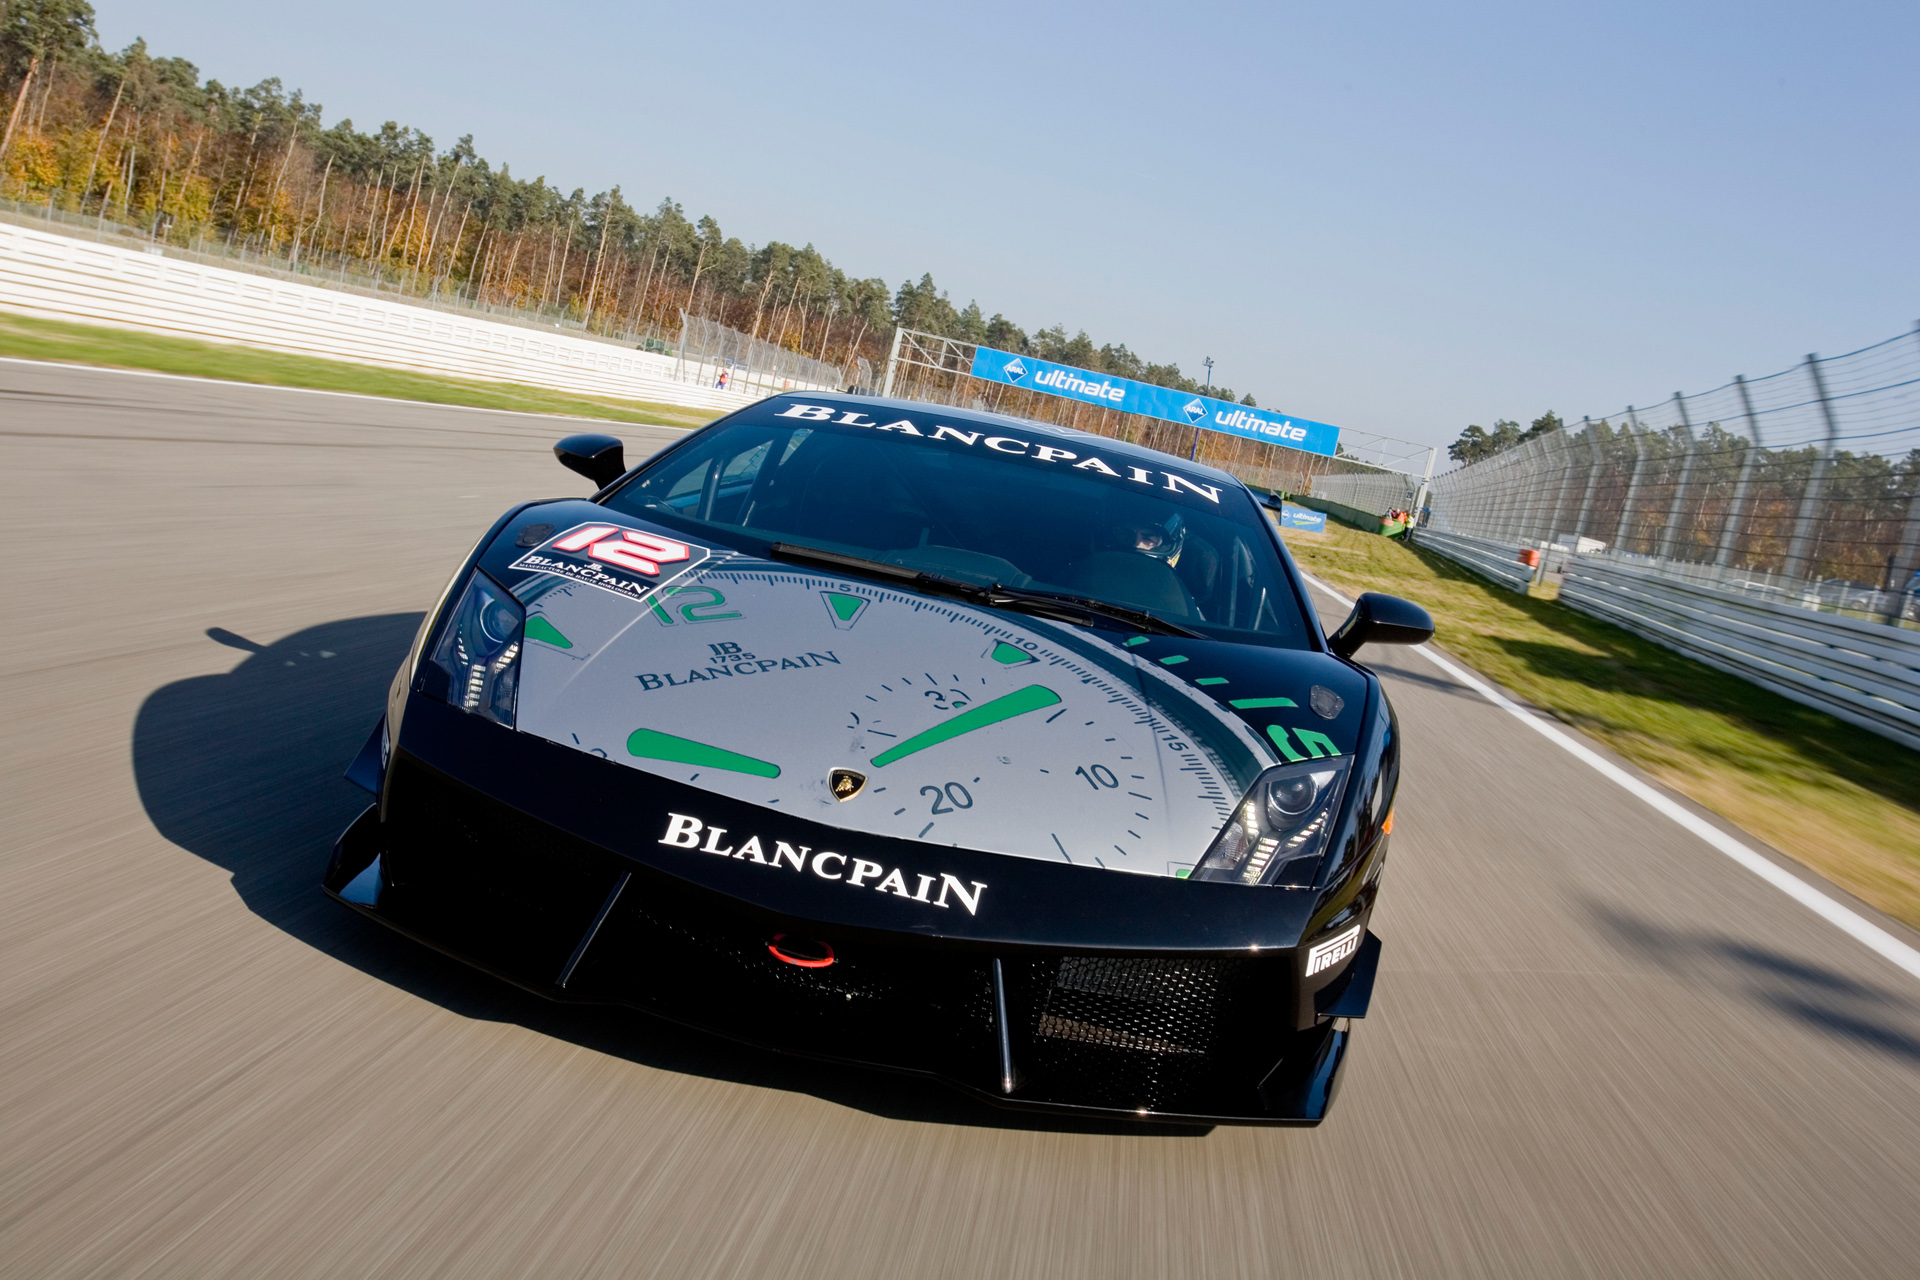 Lamborghini Gallardo LP560-4 Super Trofeo photo 71395